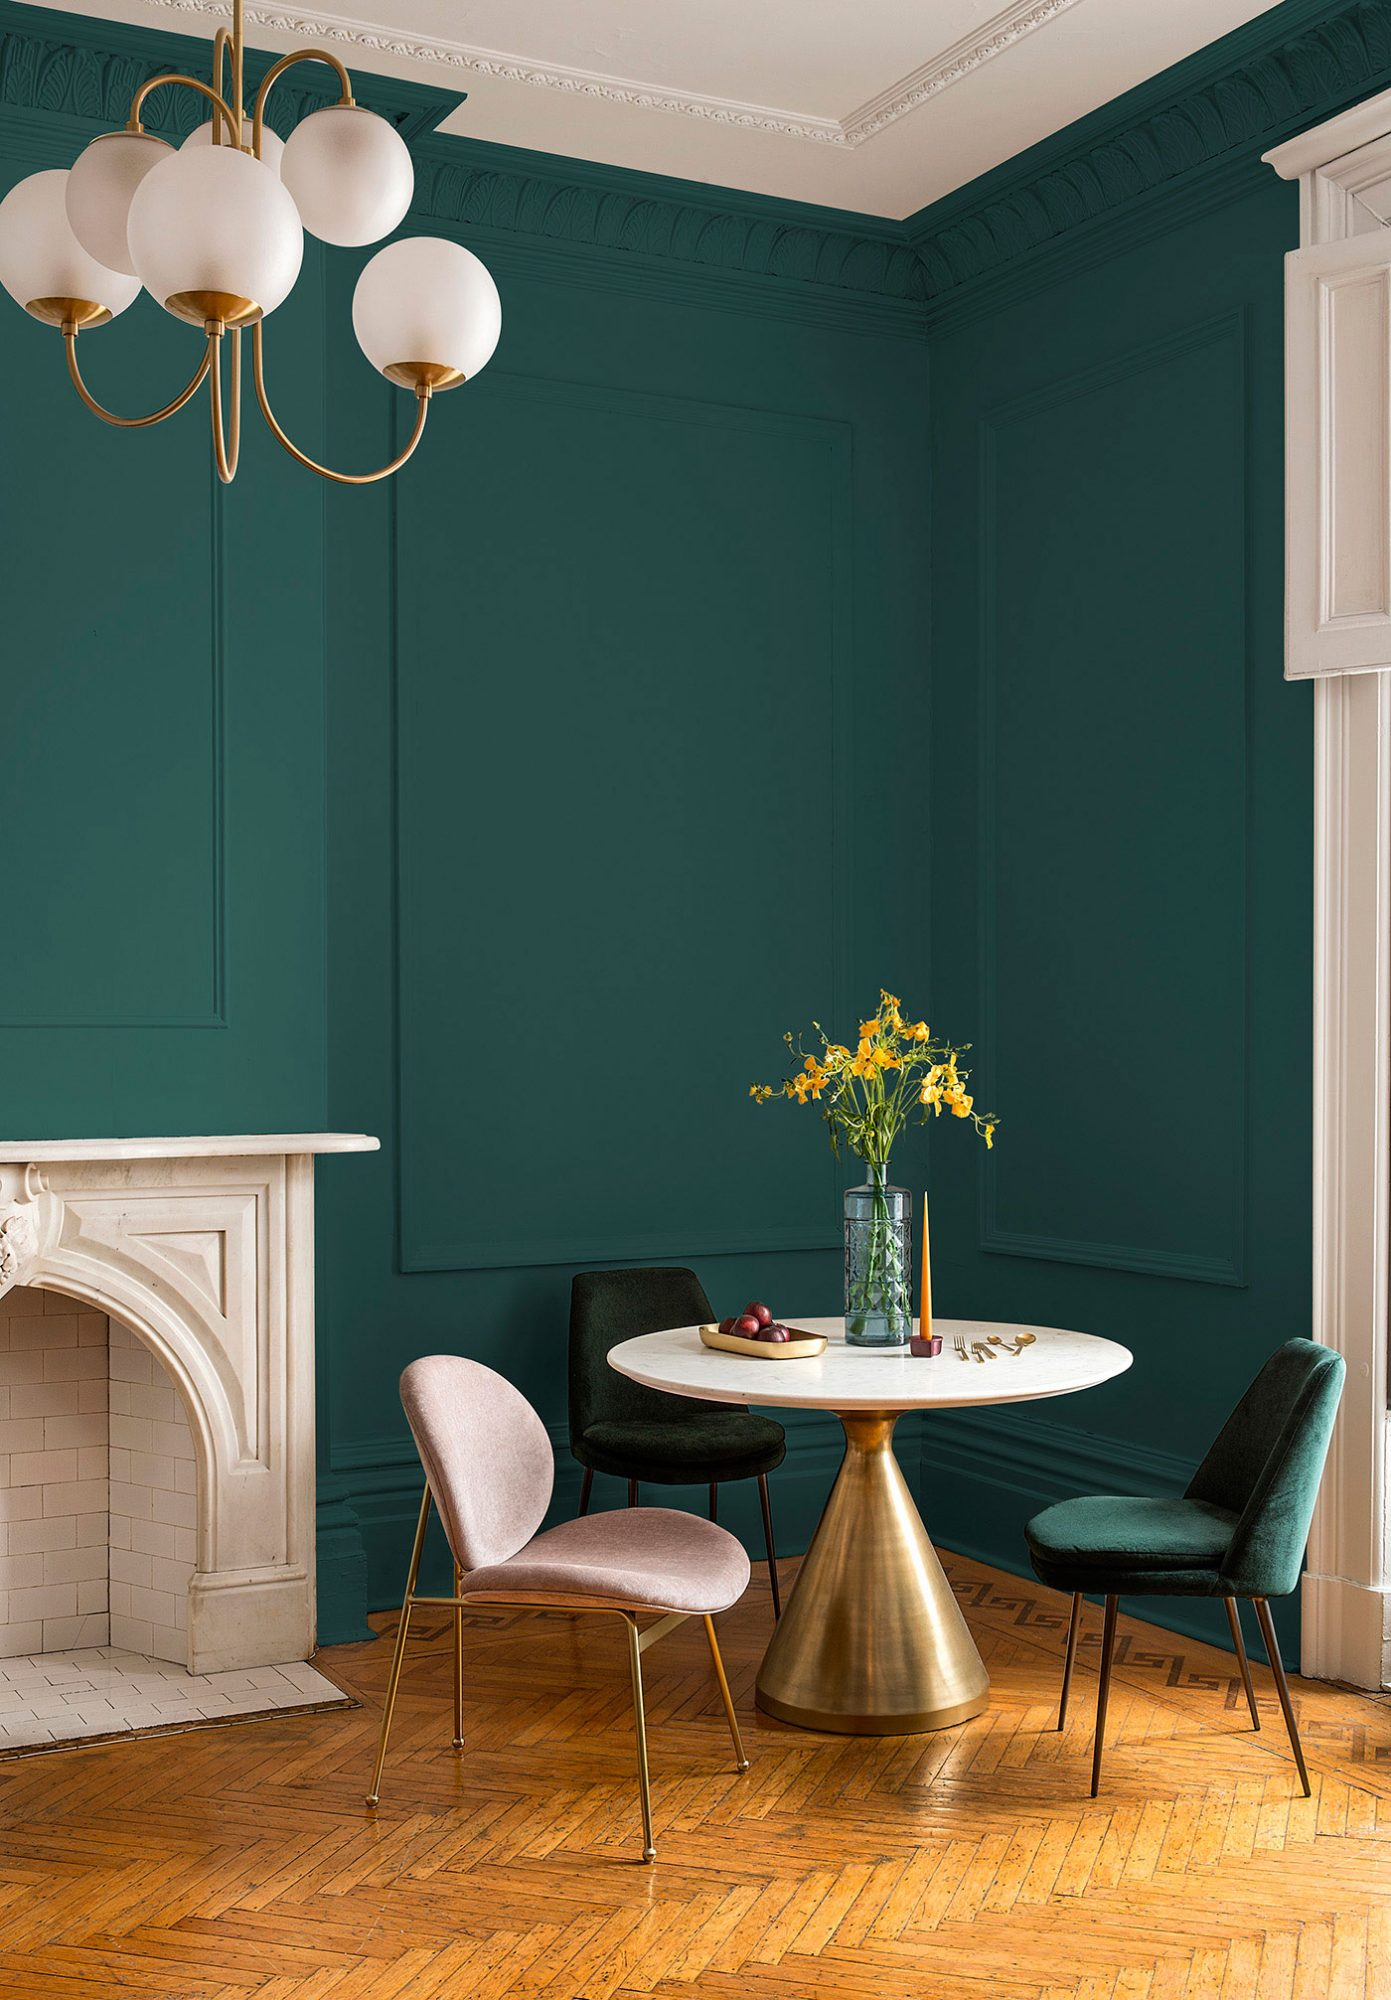 There's Already a 2019 Color of the Year! And It Looks a Lot Like Joanna Gaines' Favorite Shade ppg-night-watch-color-of-the-year-2019-3